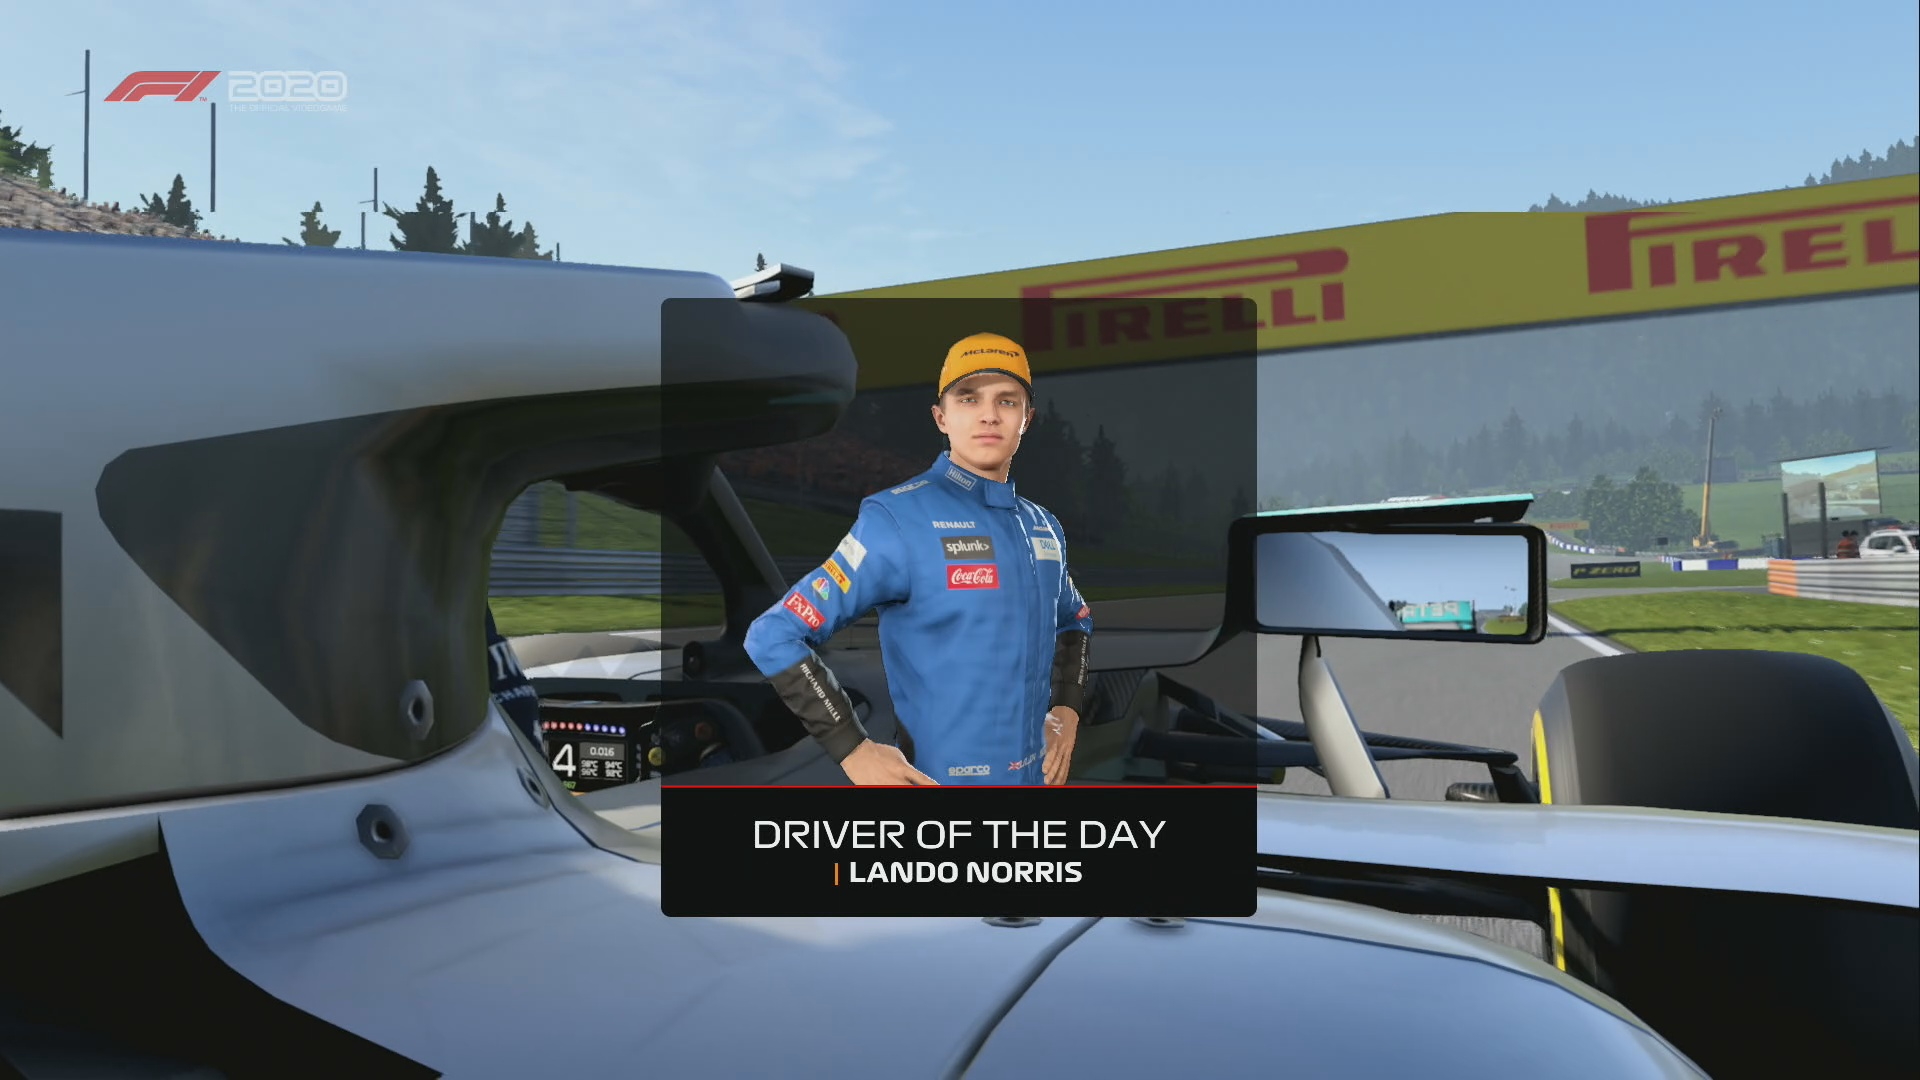 F1 2020 Norris Driver Of The Day